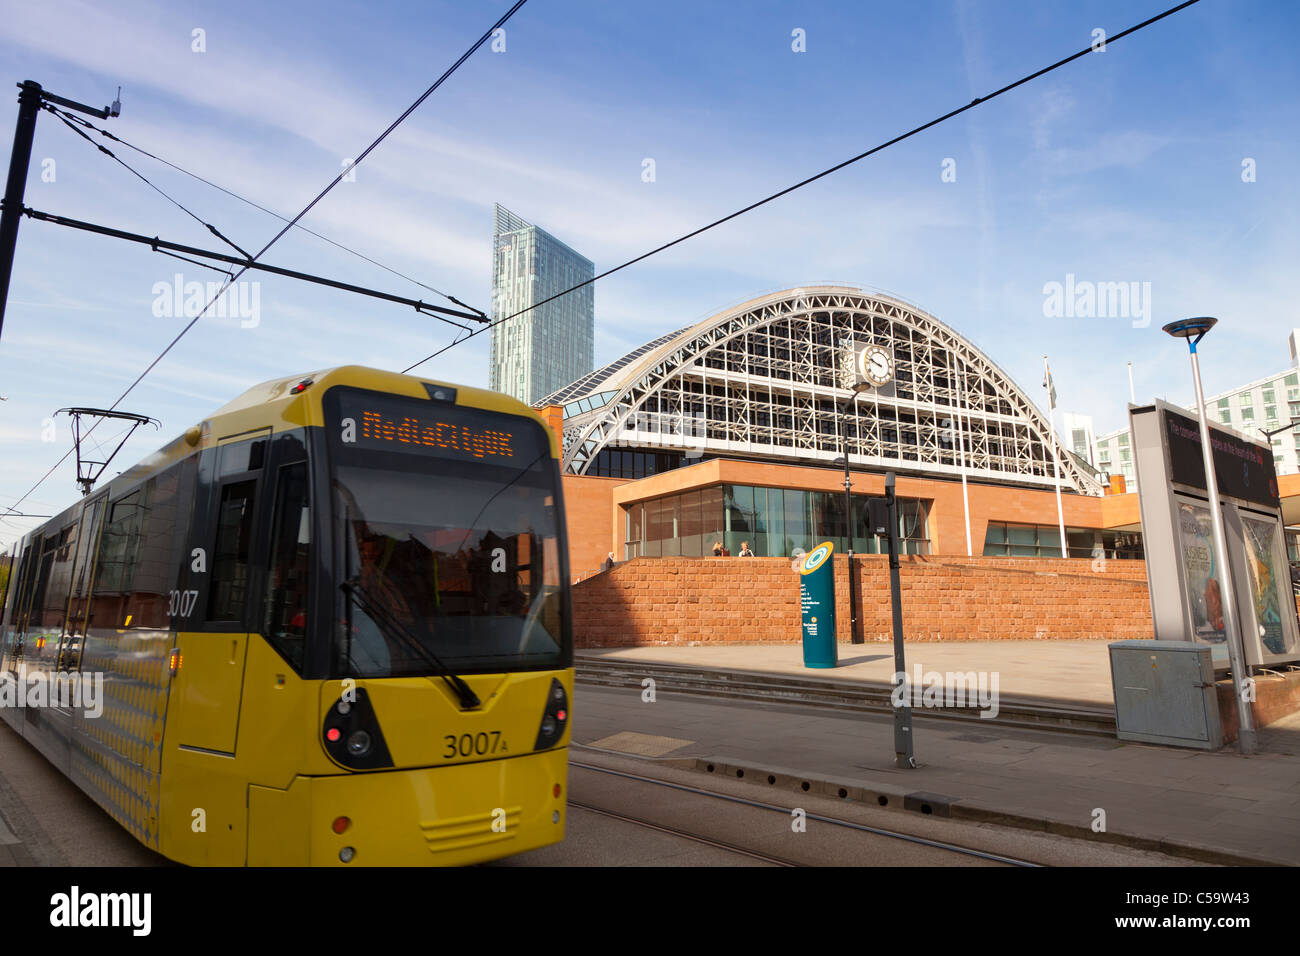 tram passing convention centre, England, Manchester - Stock Image